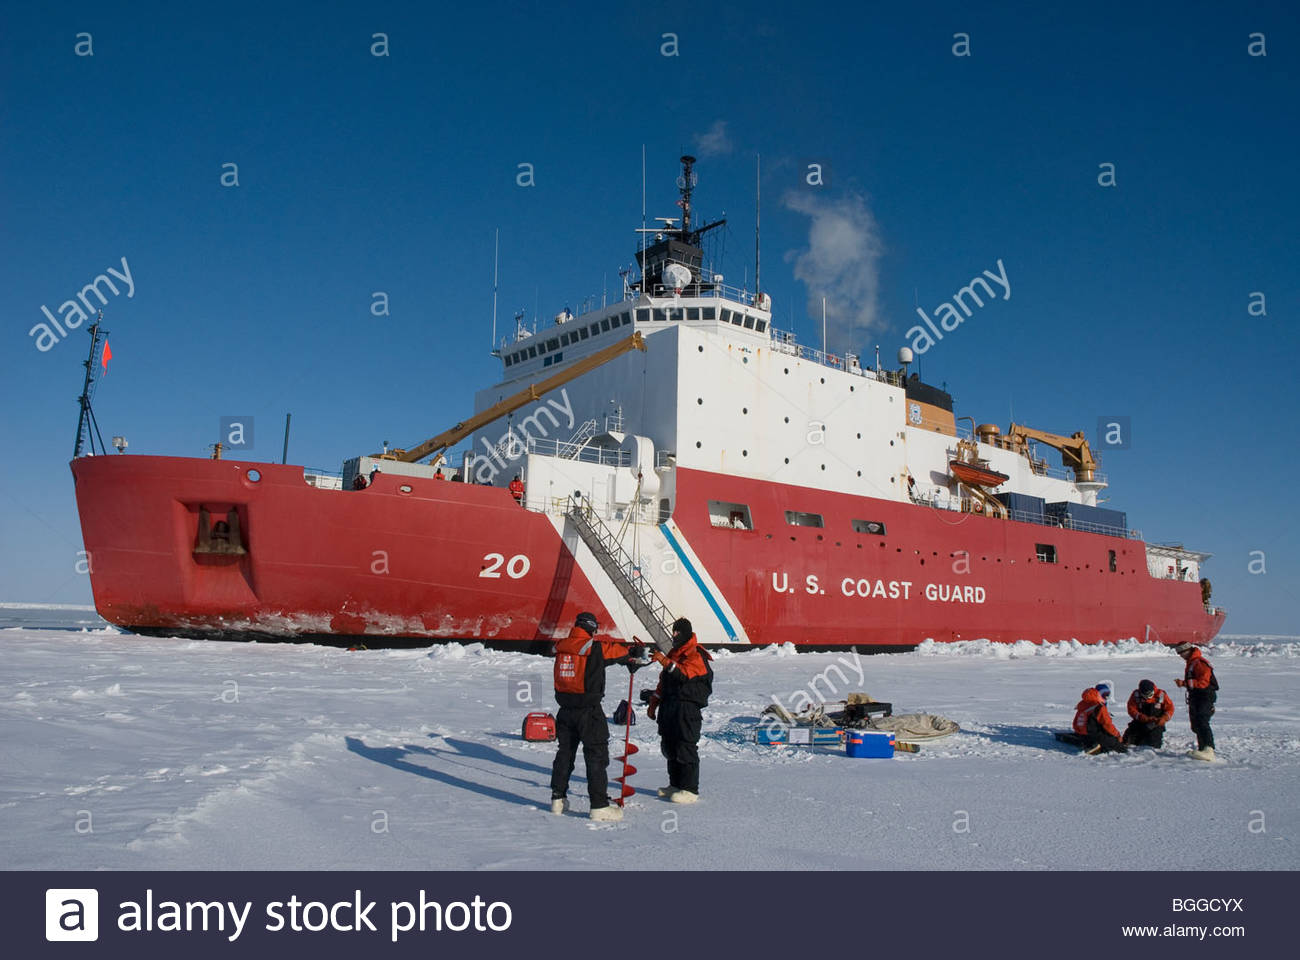 Alaska, Bering Sea. Scientents disembark from a US Coast Guard icebreaker to perform ice-coring tests on the pack - Stock Image